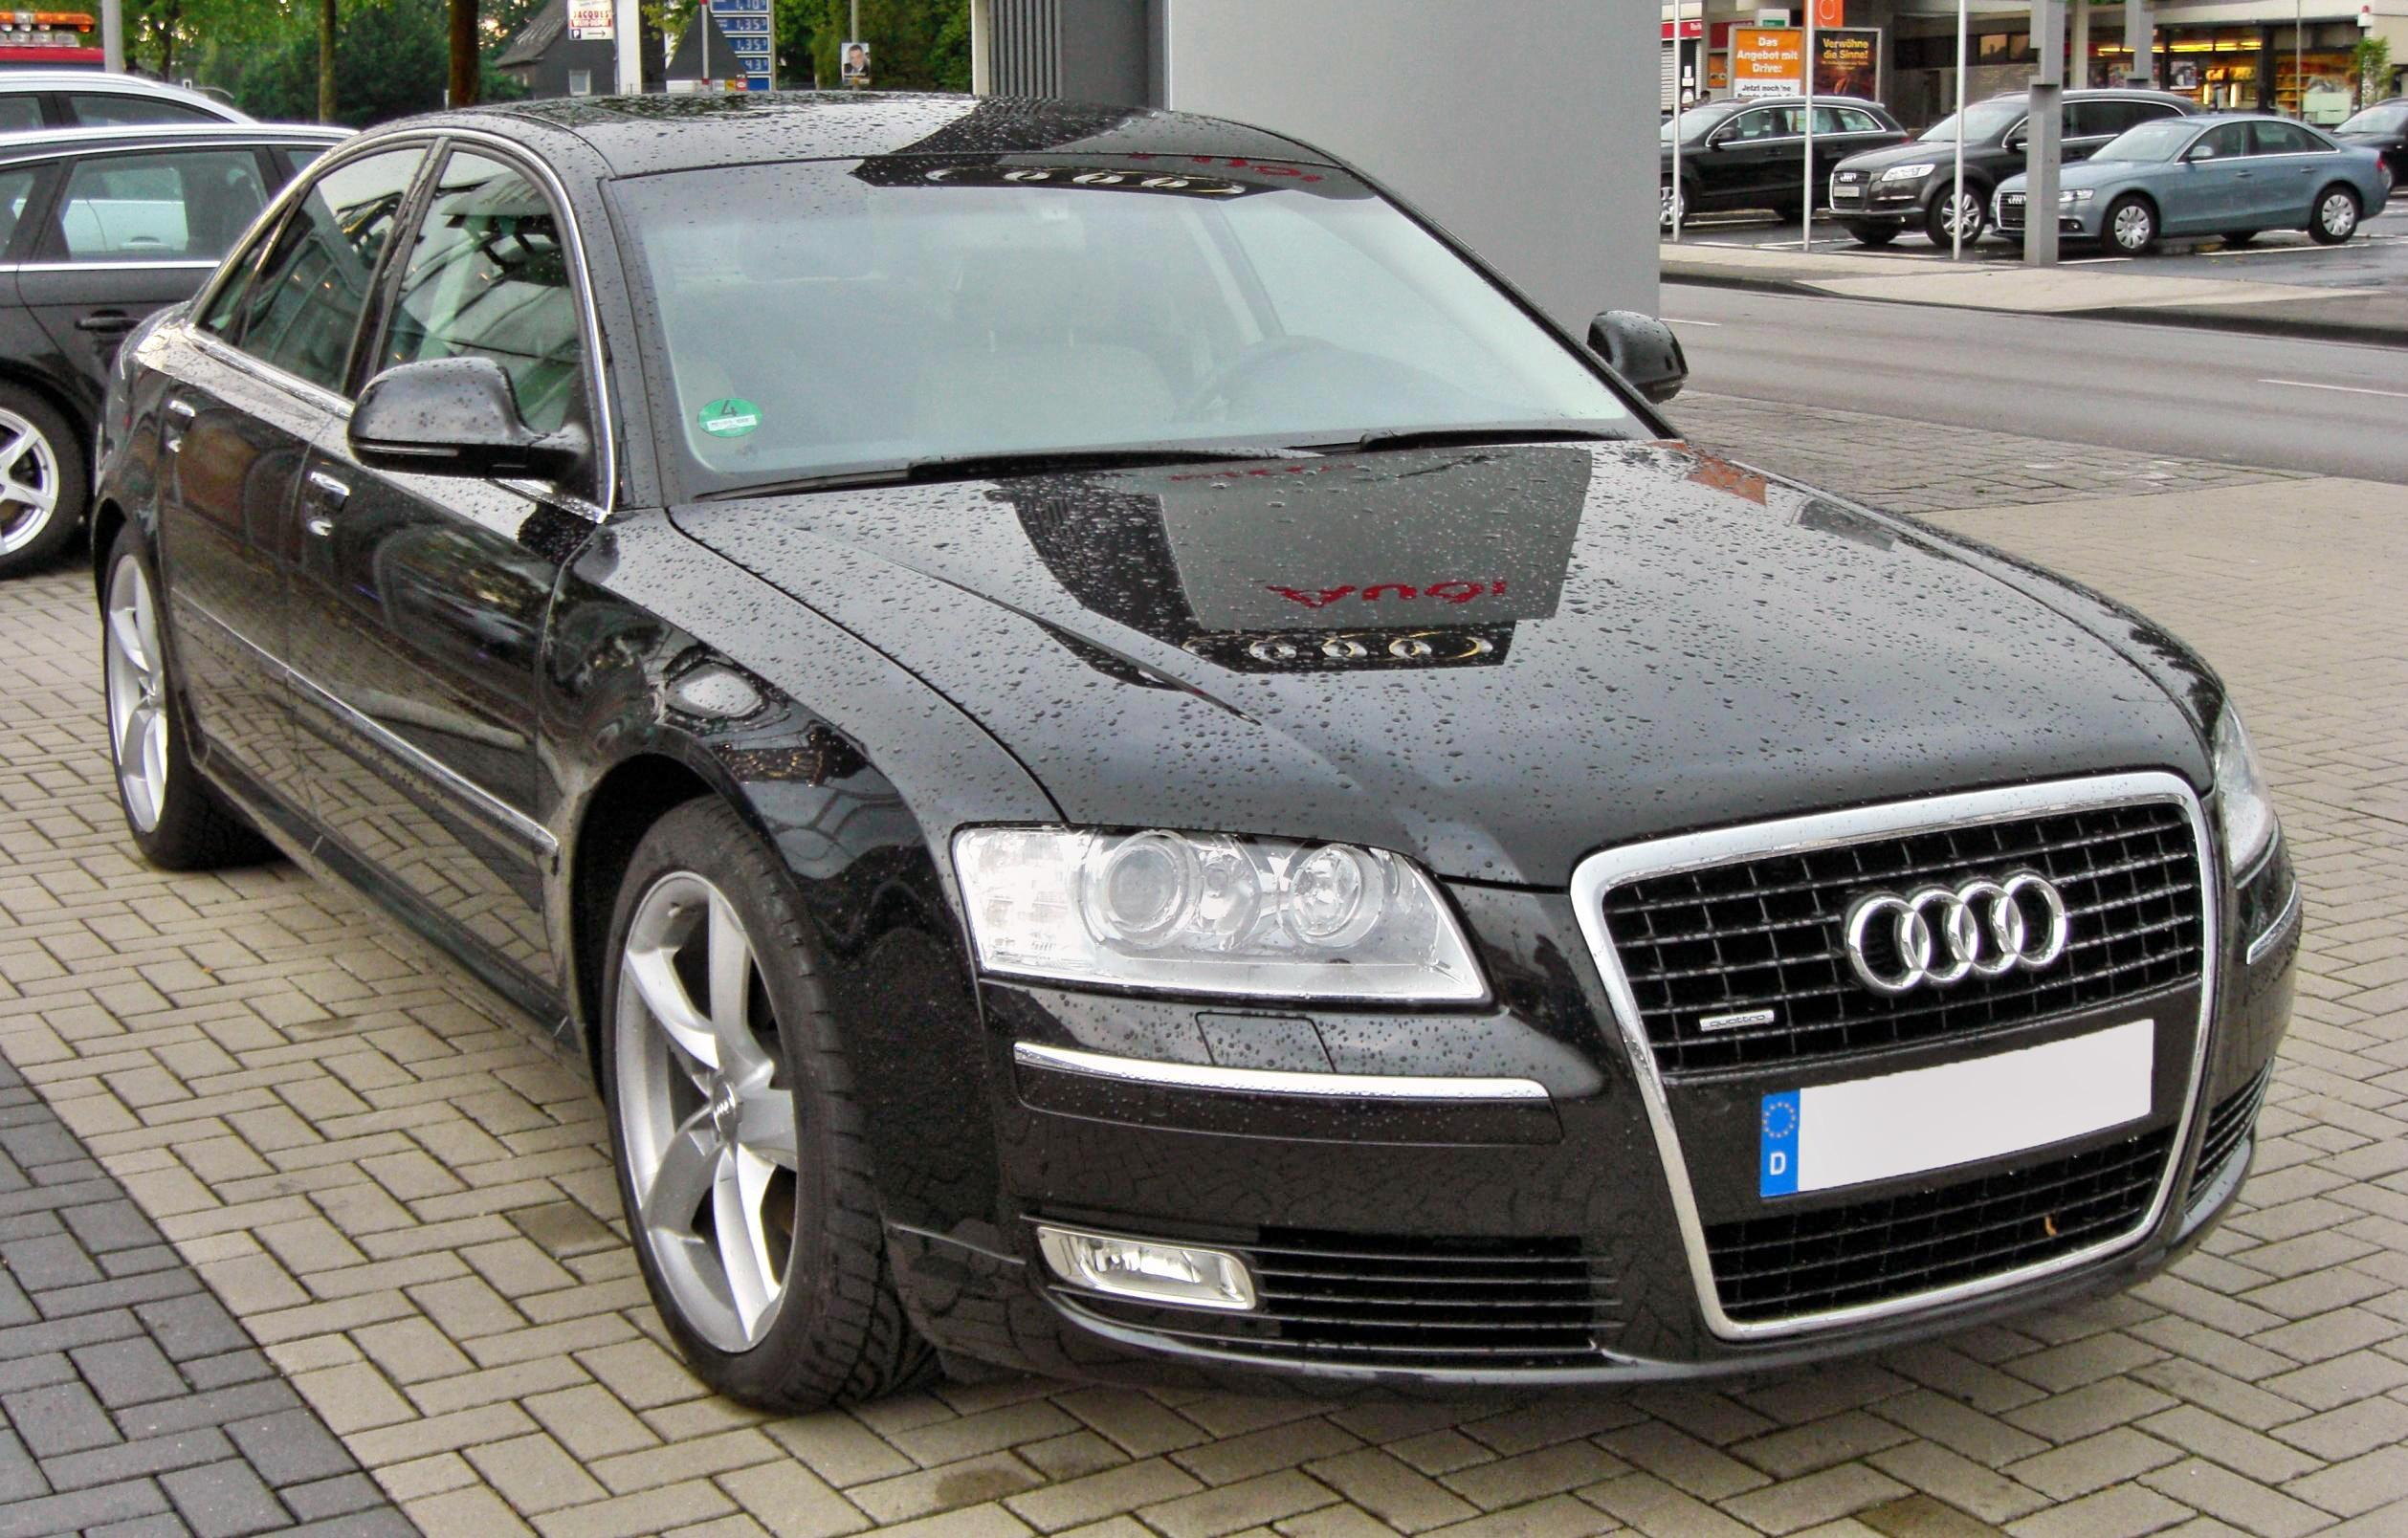 file audi a8 d3 2 facelift 20090611 front jpg wikimedia commons. Black Bedroom Furniture Sets. Home Design Ideas